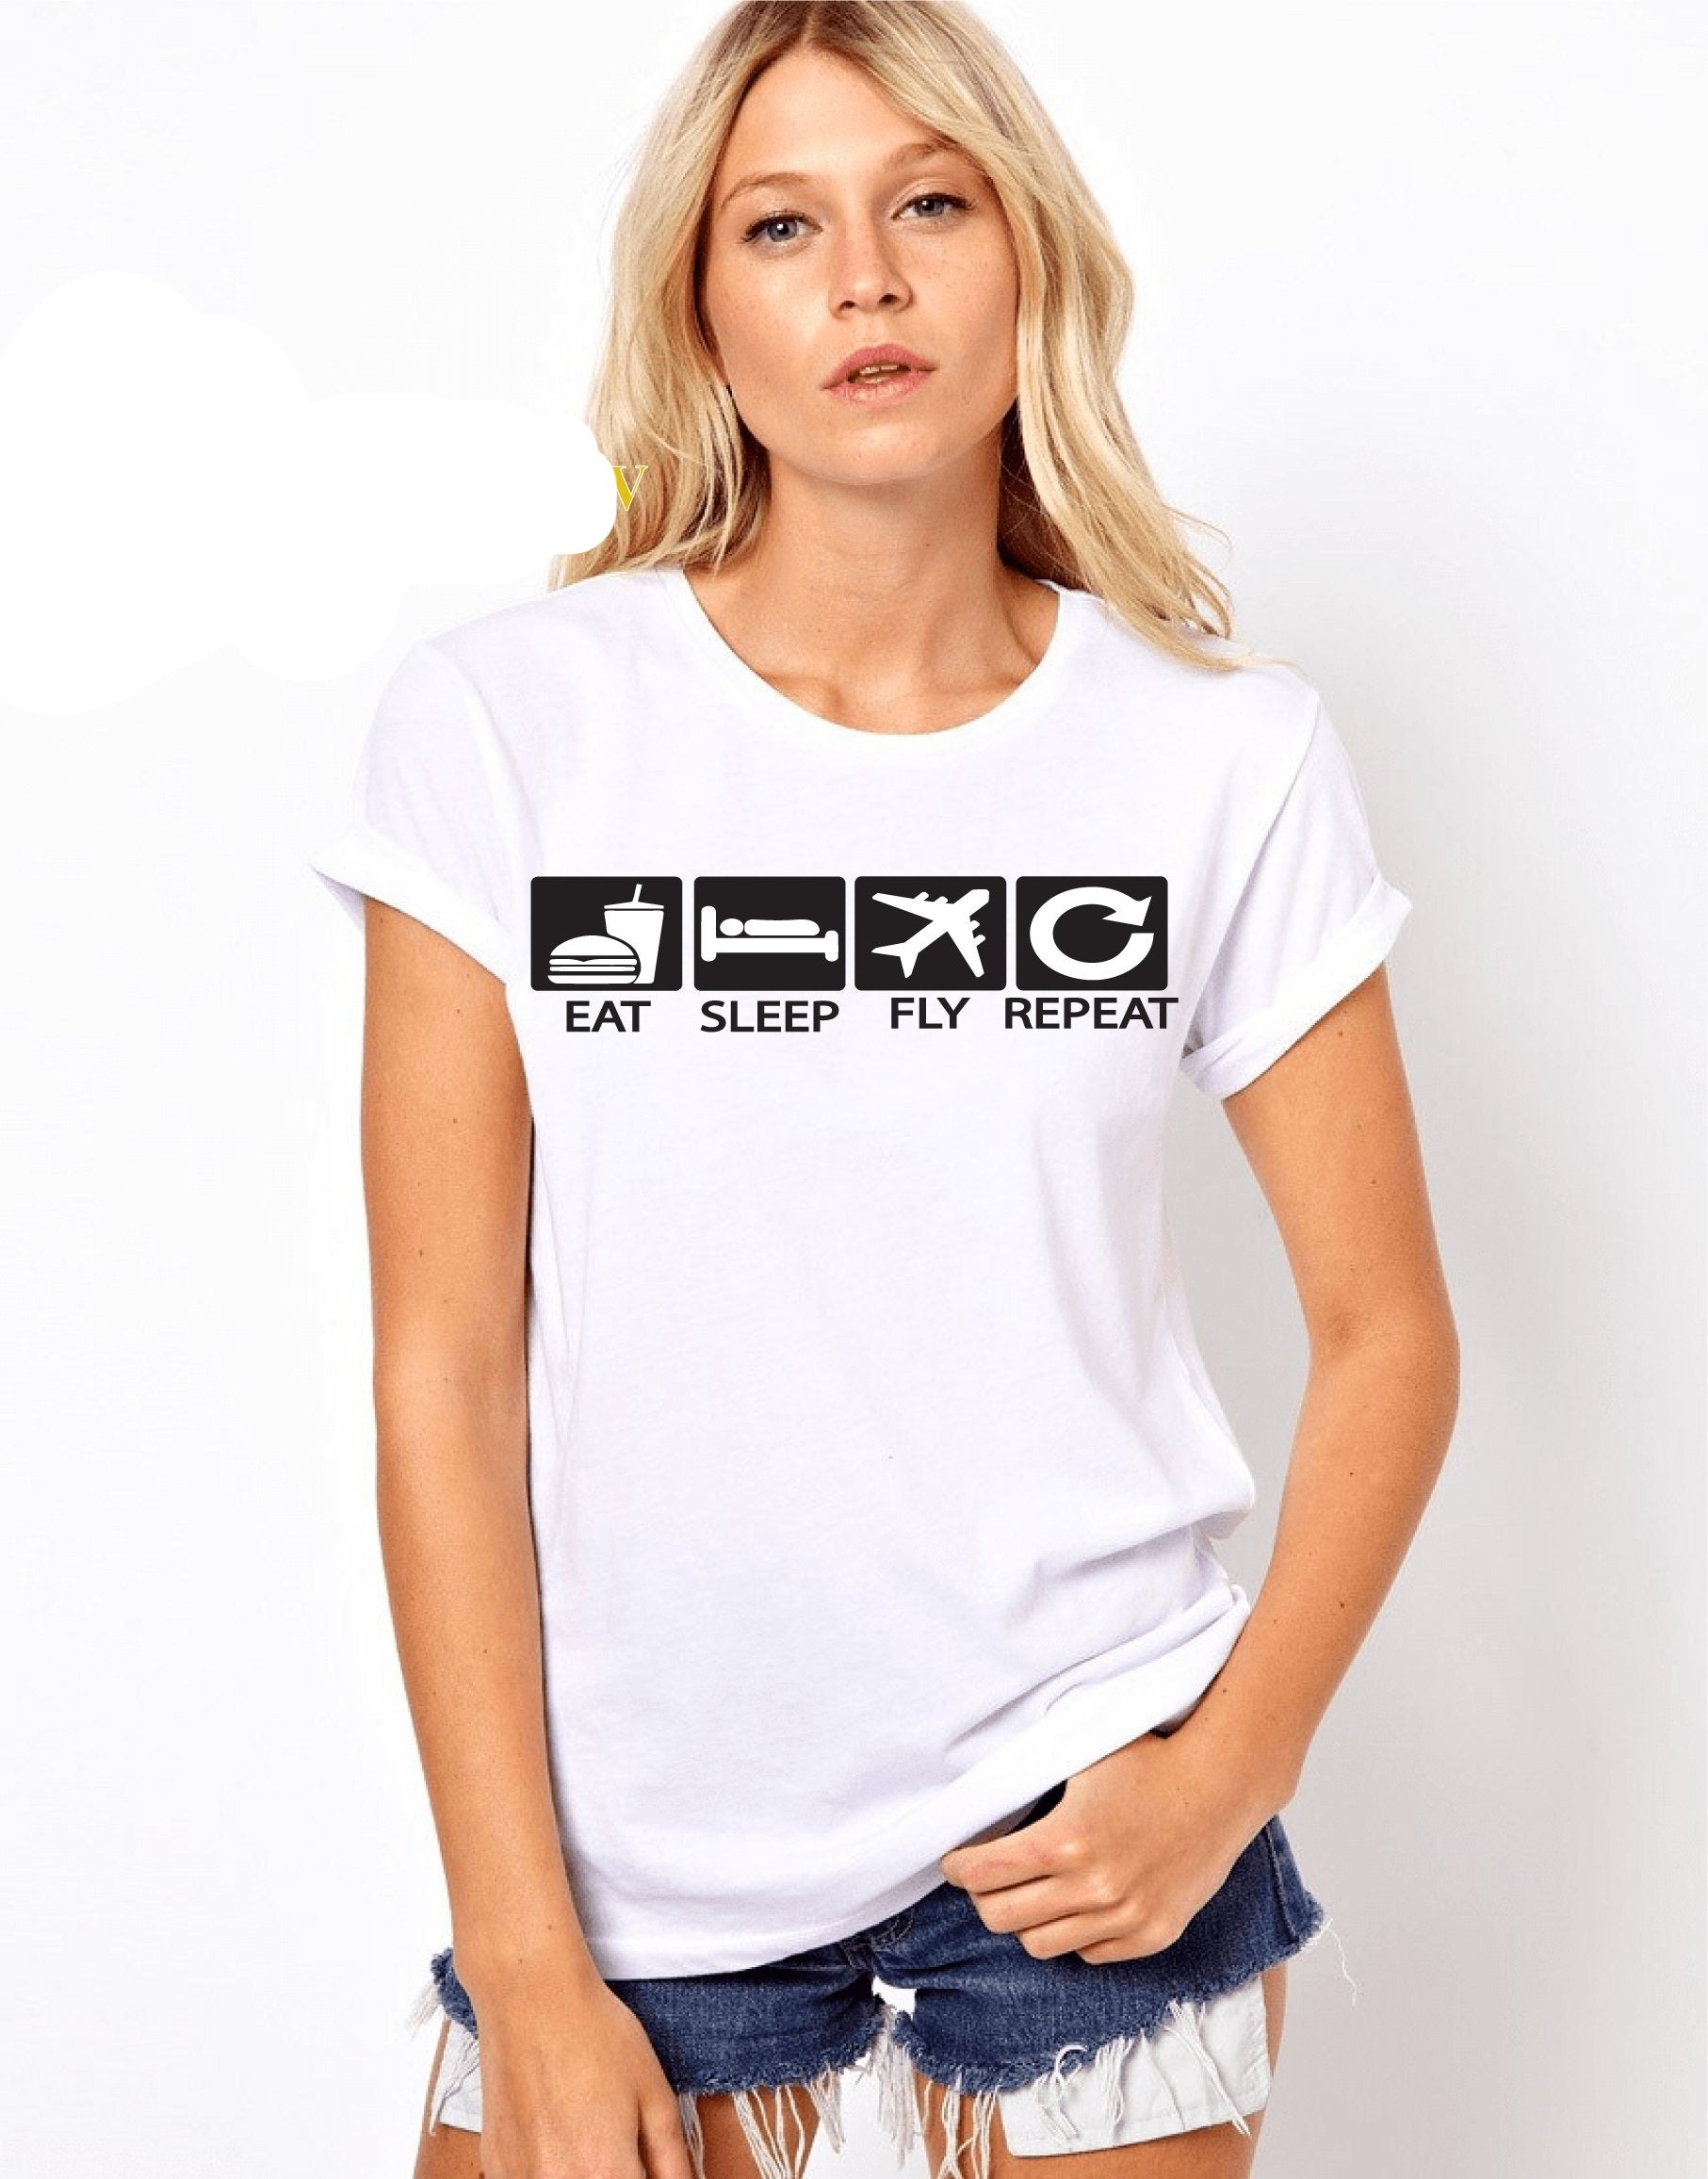 Eat Sleep Fly and Repeat -Unisex T-shirt - Sky Crew PTY